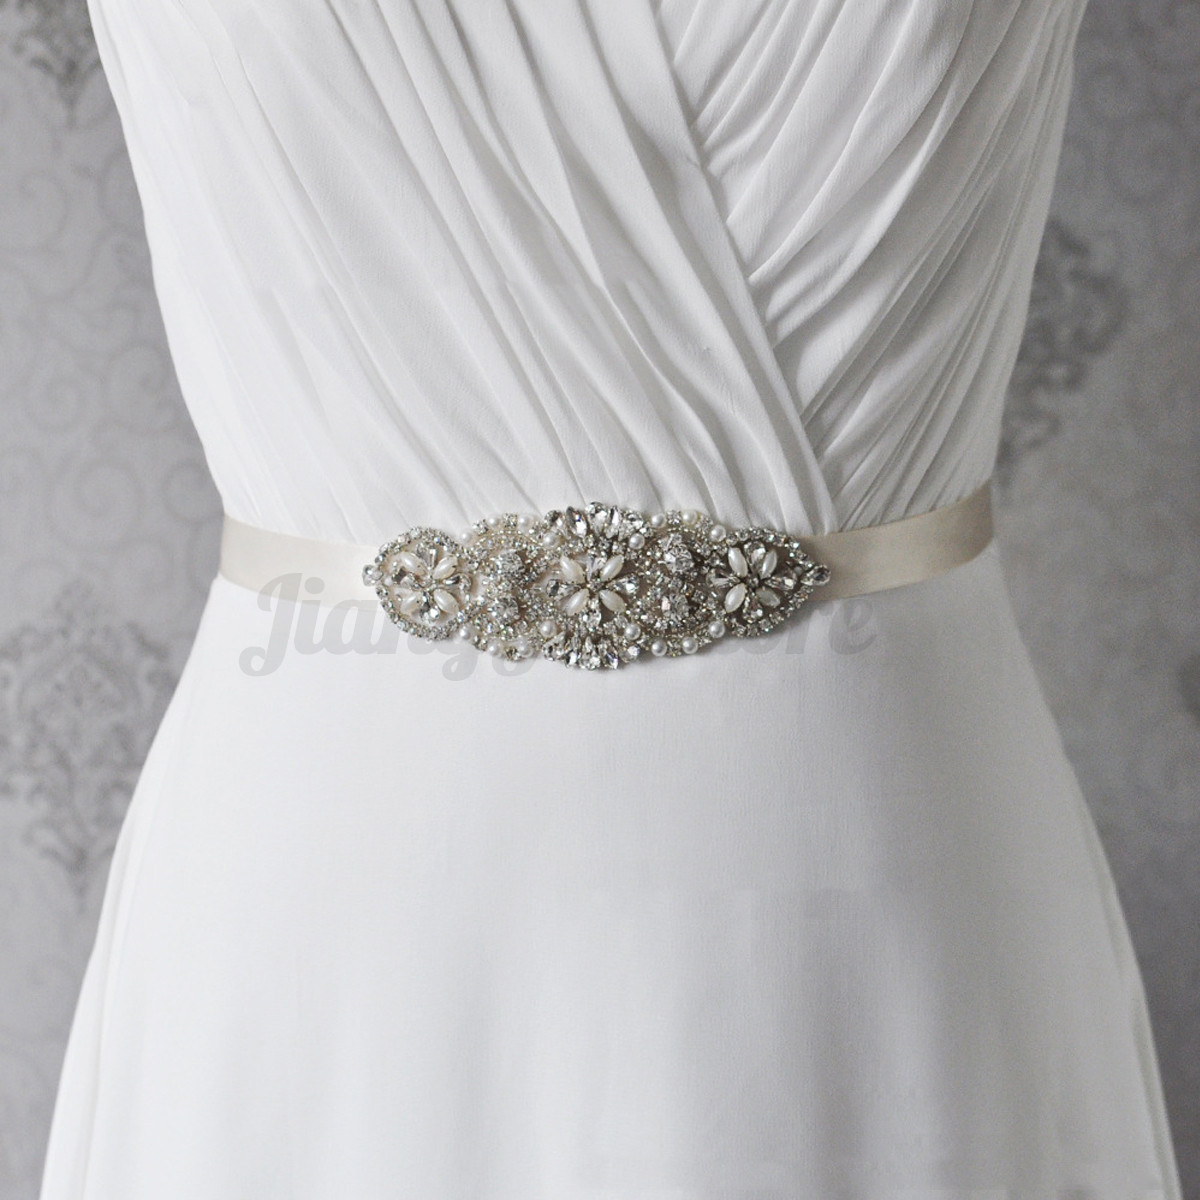 Crystal rhinestone bead wedding bridal dress sash belt for Wedding dress sash with rhinestones